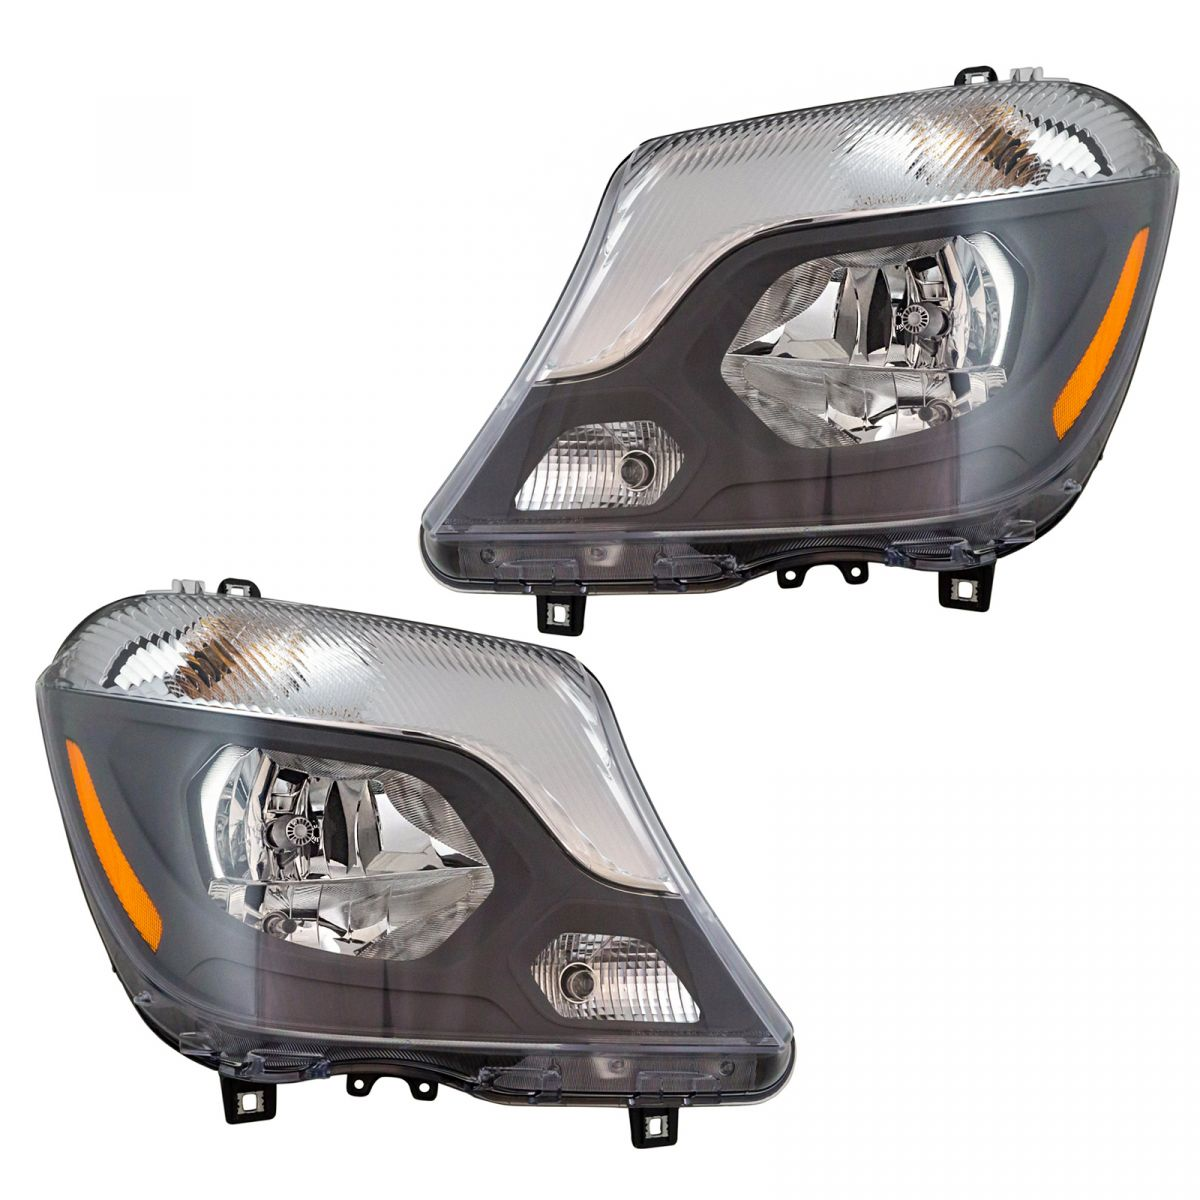 *NEW* TAIL LIGHT LAMP RIGHT for MERCEDES BENZ SPRINTER 1998-2003 LEFT PAIR